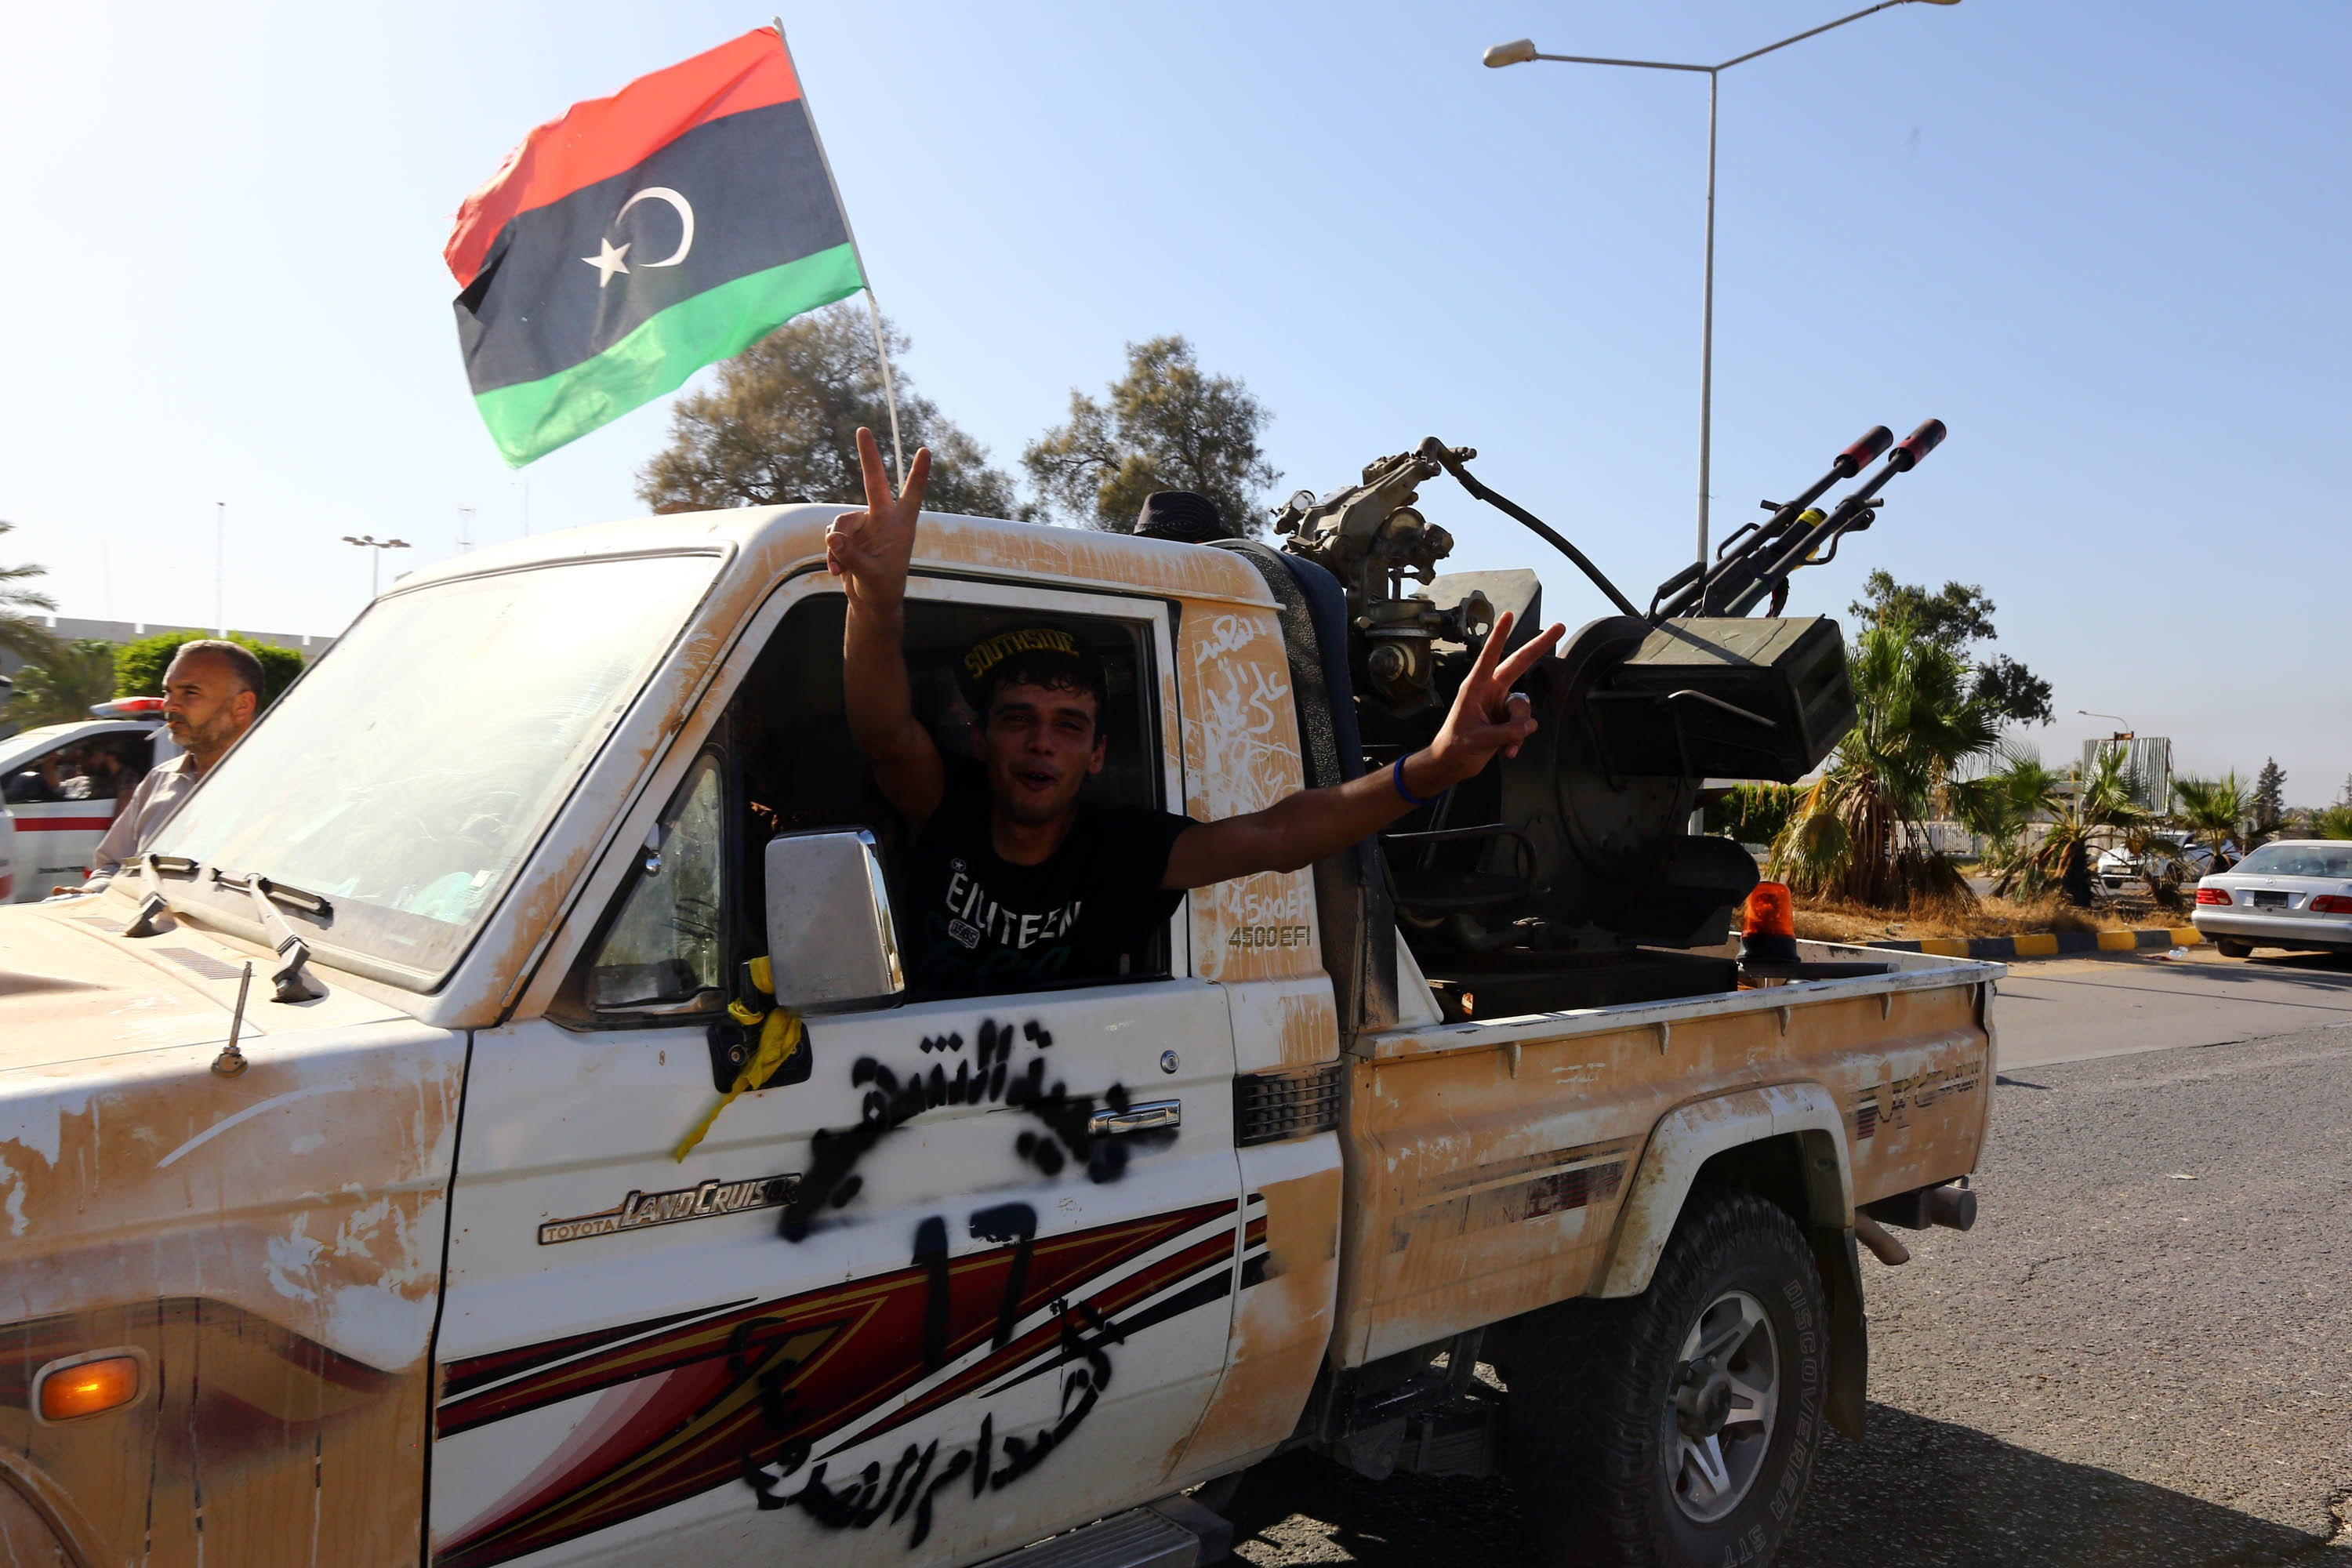 An Islamist fighter from the Fajr Libya (Libyan Dawn) coalition flashes the V sign for victory at the entrance of Tripoli international airport on August 24, 2014, after capturing it from Zintan force, allies of rogue general Khalifa Haftar, following many days of clashes.